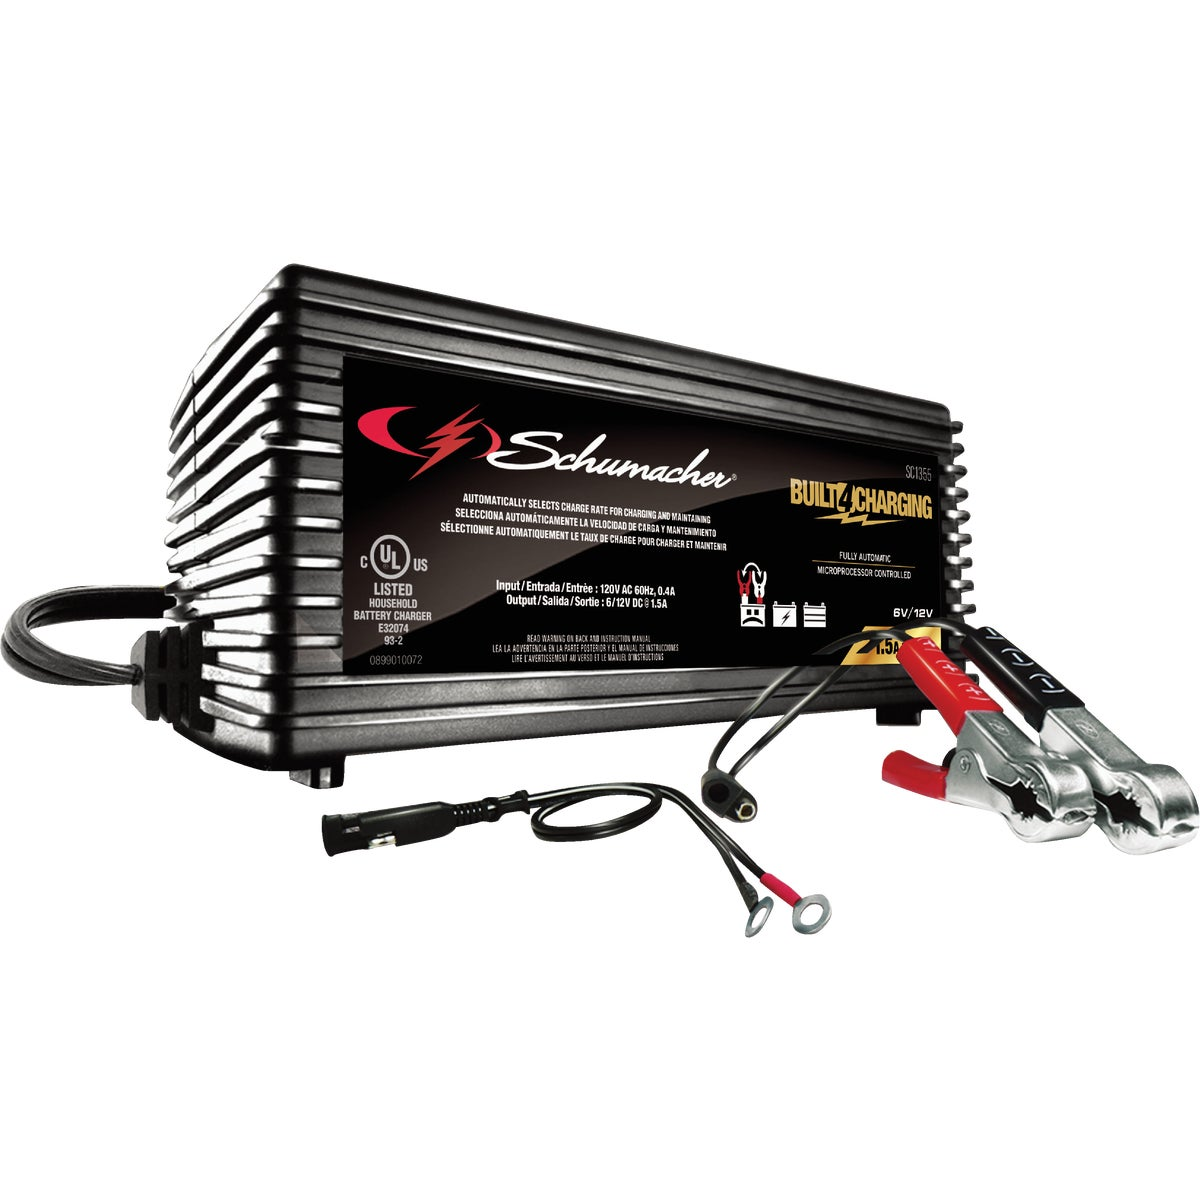 Schumacher SpeedCharge 6V/12V Battery Charger/Maintainer, SC1355